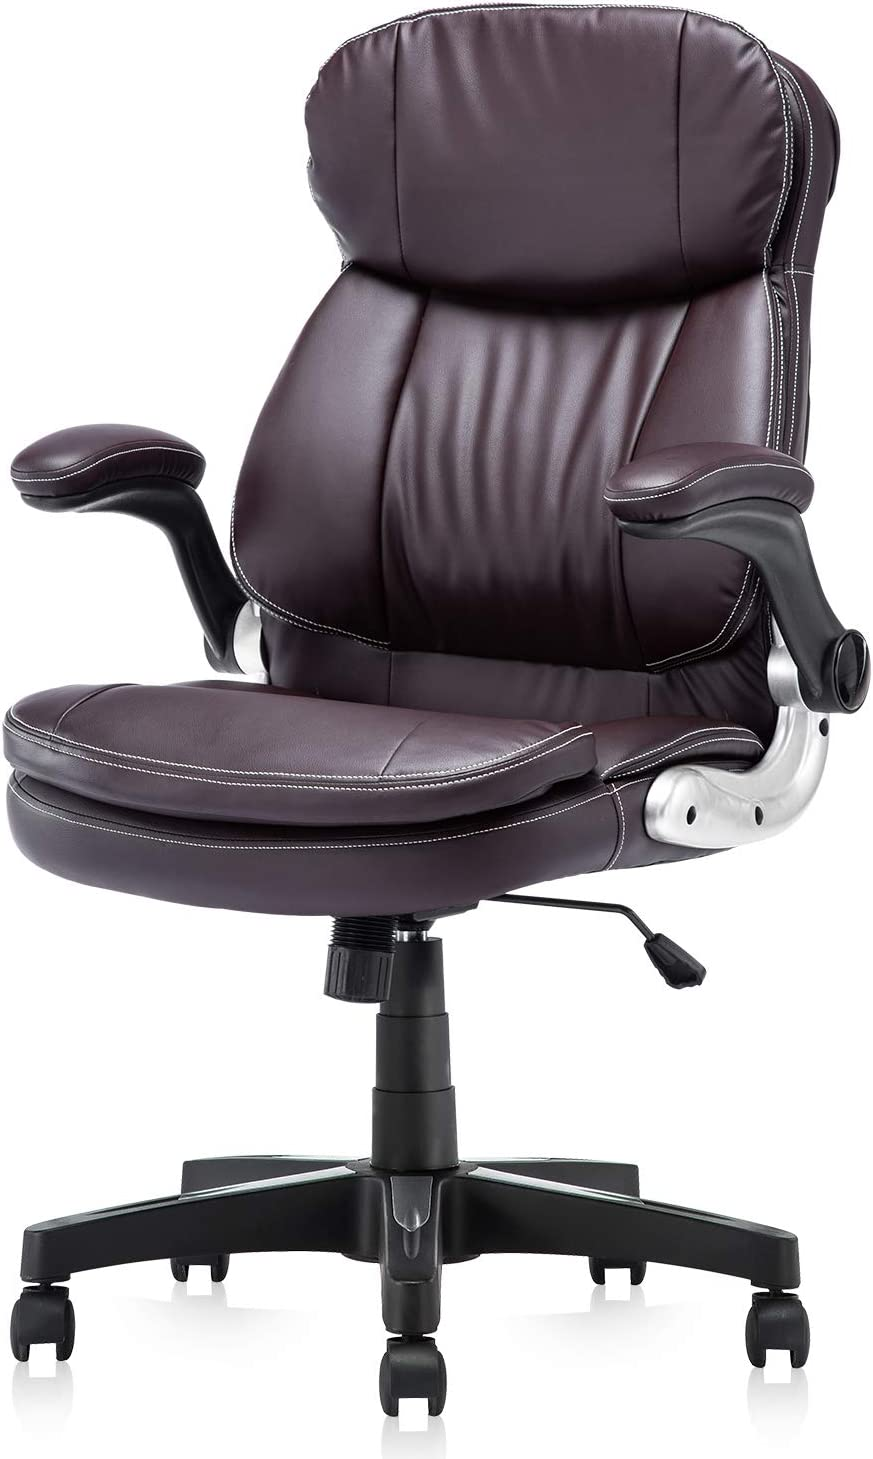 KERMS High Back PU Leather Executive Office Chair, Adjustable Recline Locking Flip-up Arms Computer Desk Chair, Thick Padding and Ergonomic Design for Lumbar Support Brown